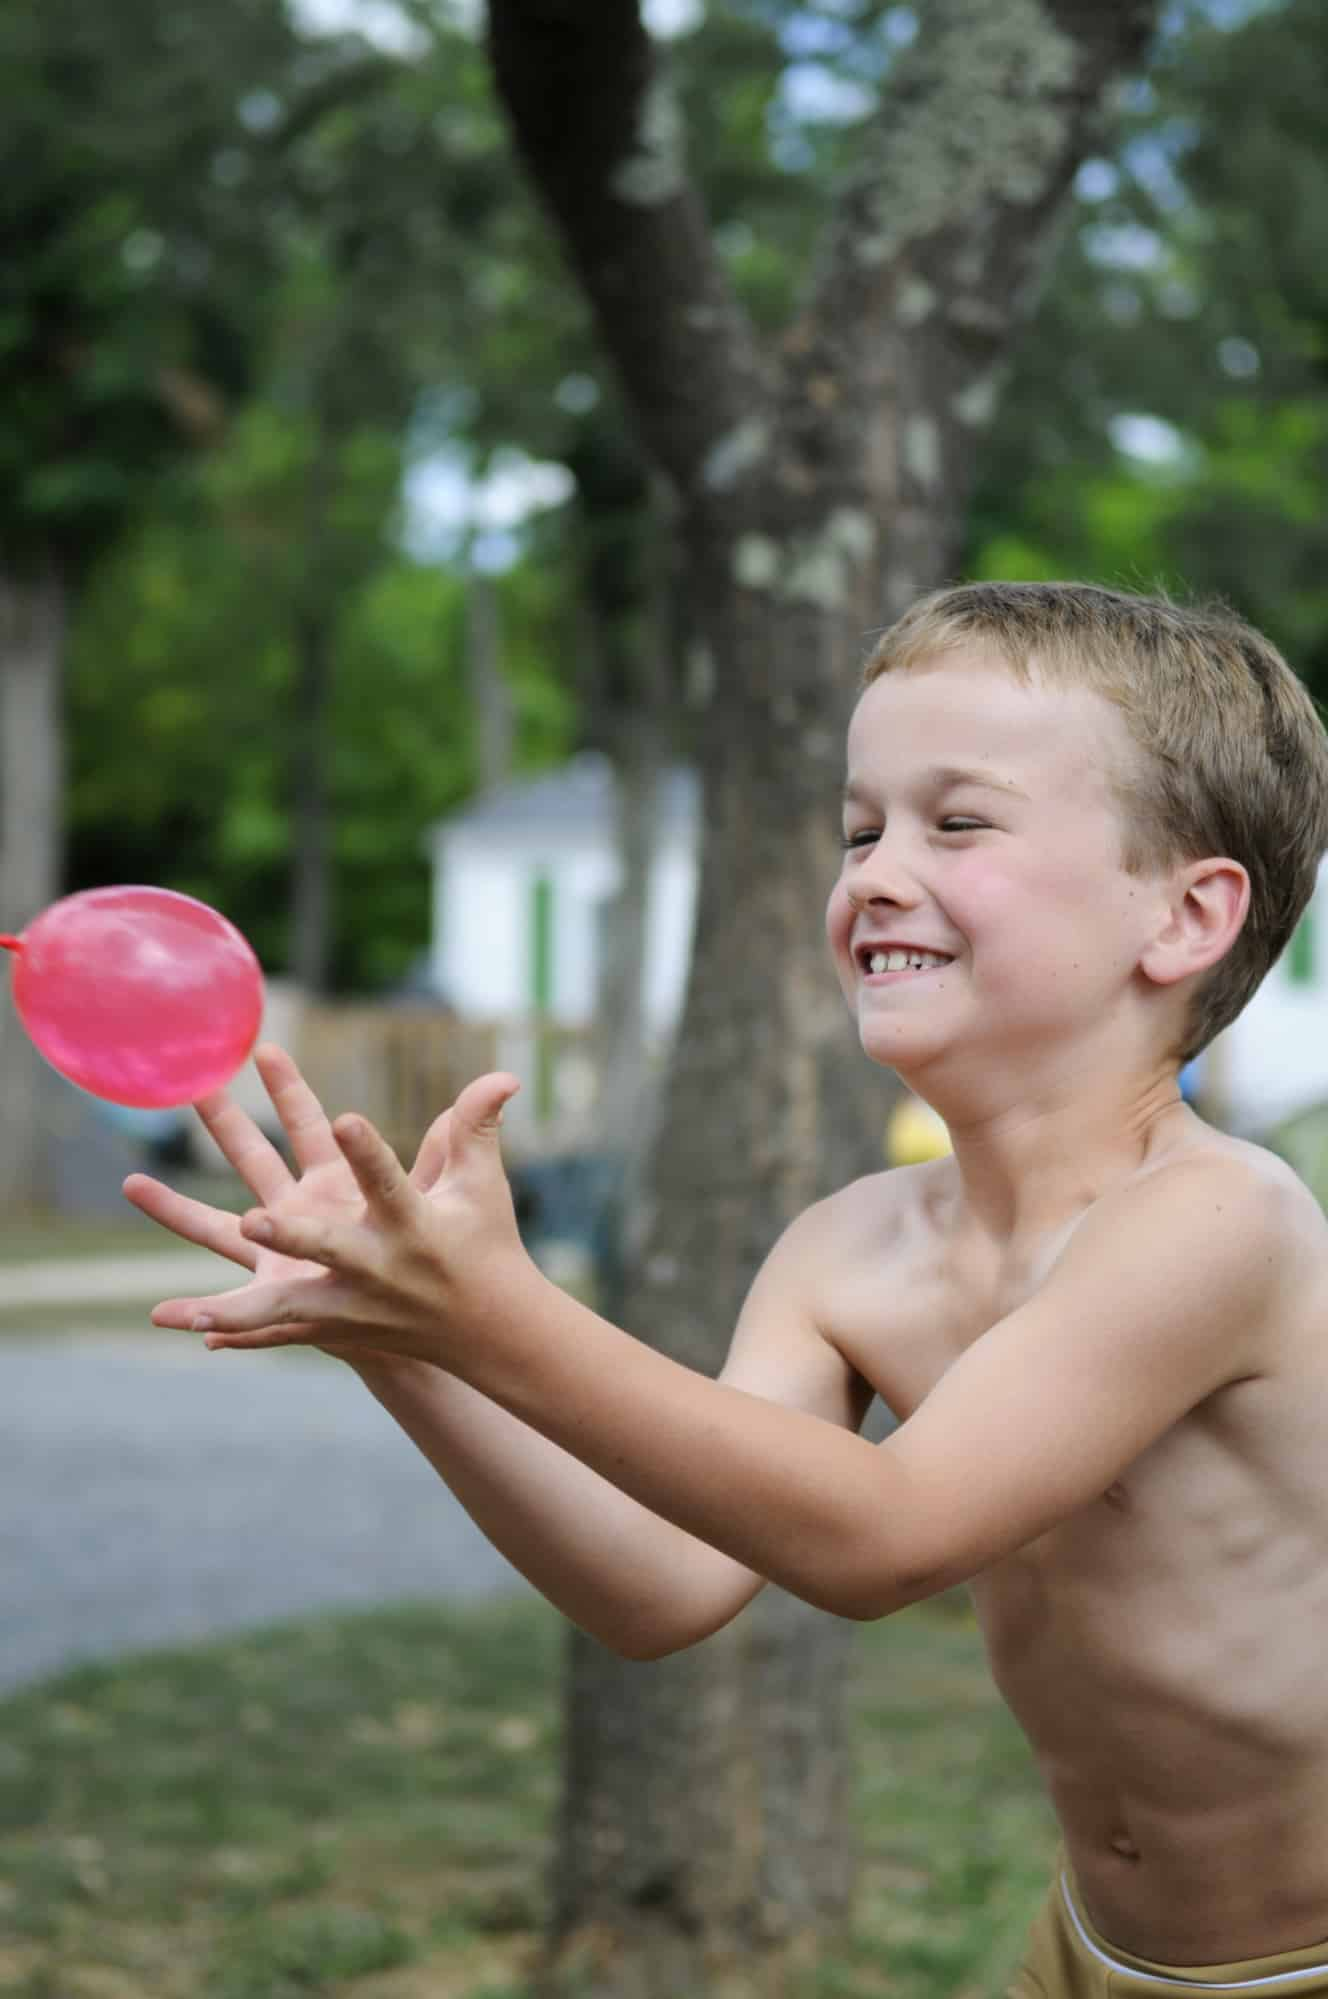 Little boy smiling while catching a water balloon.